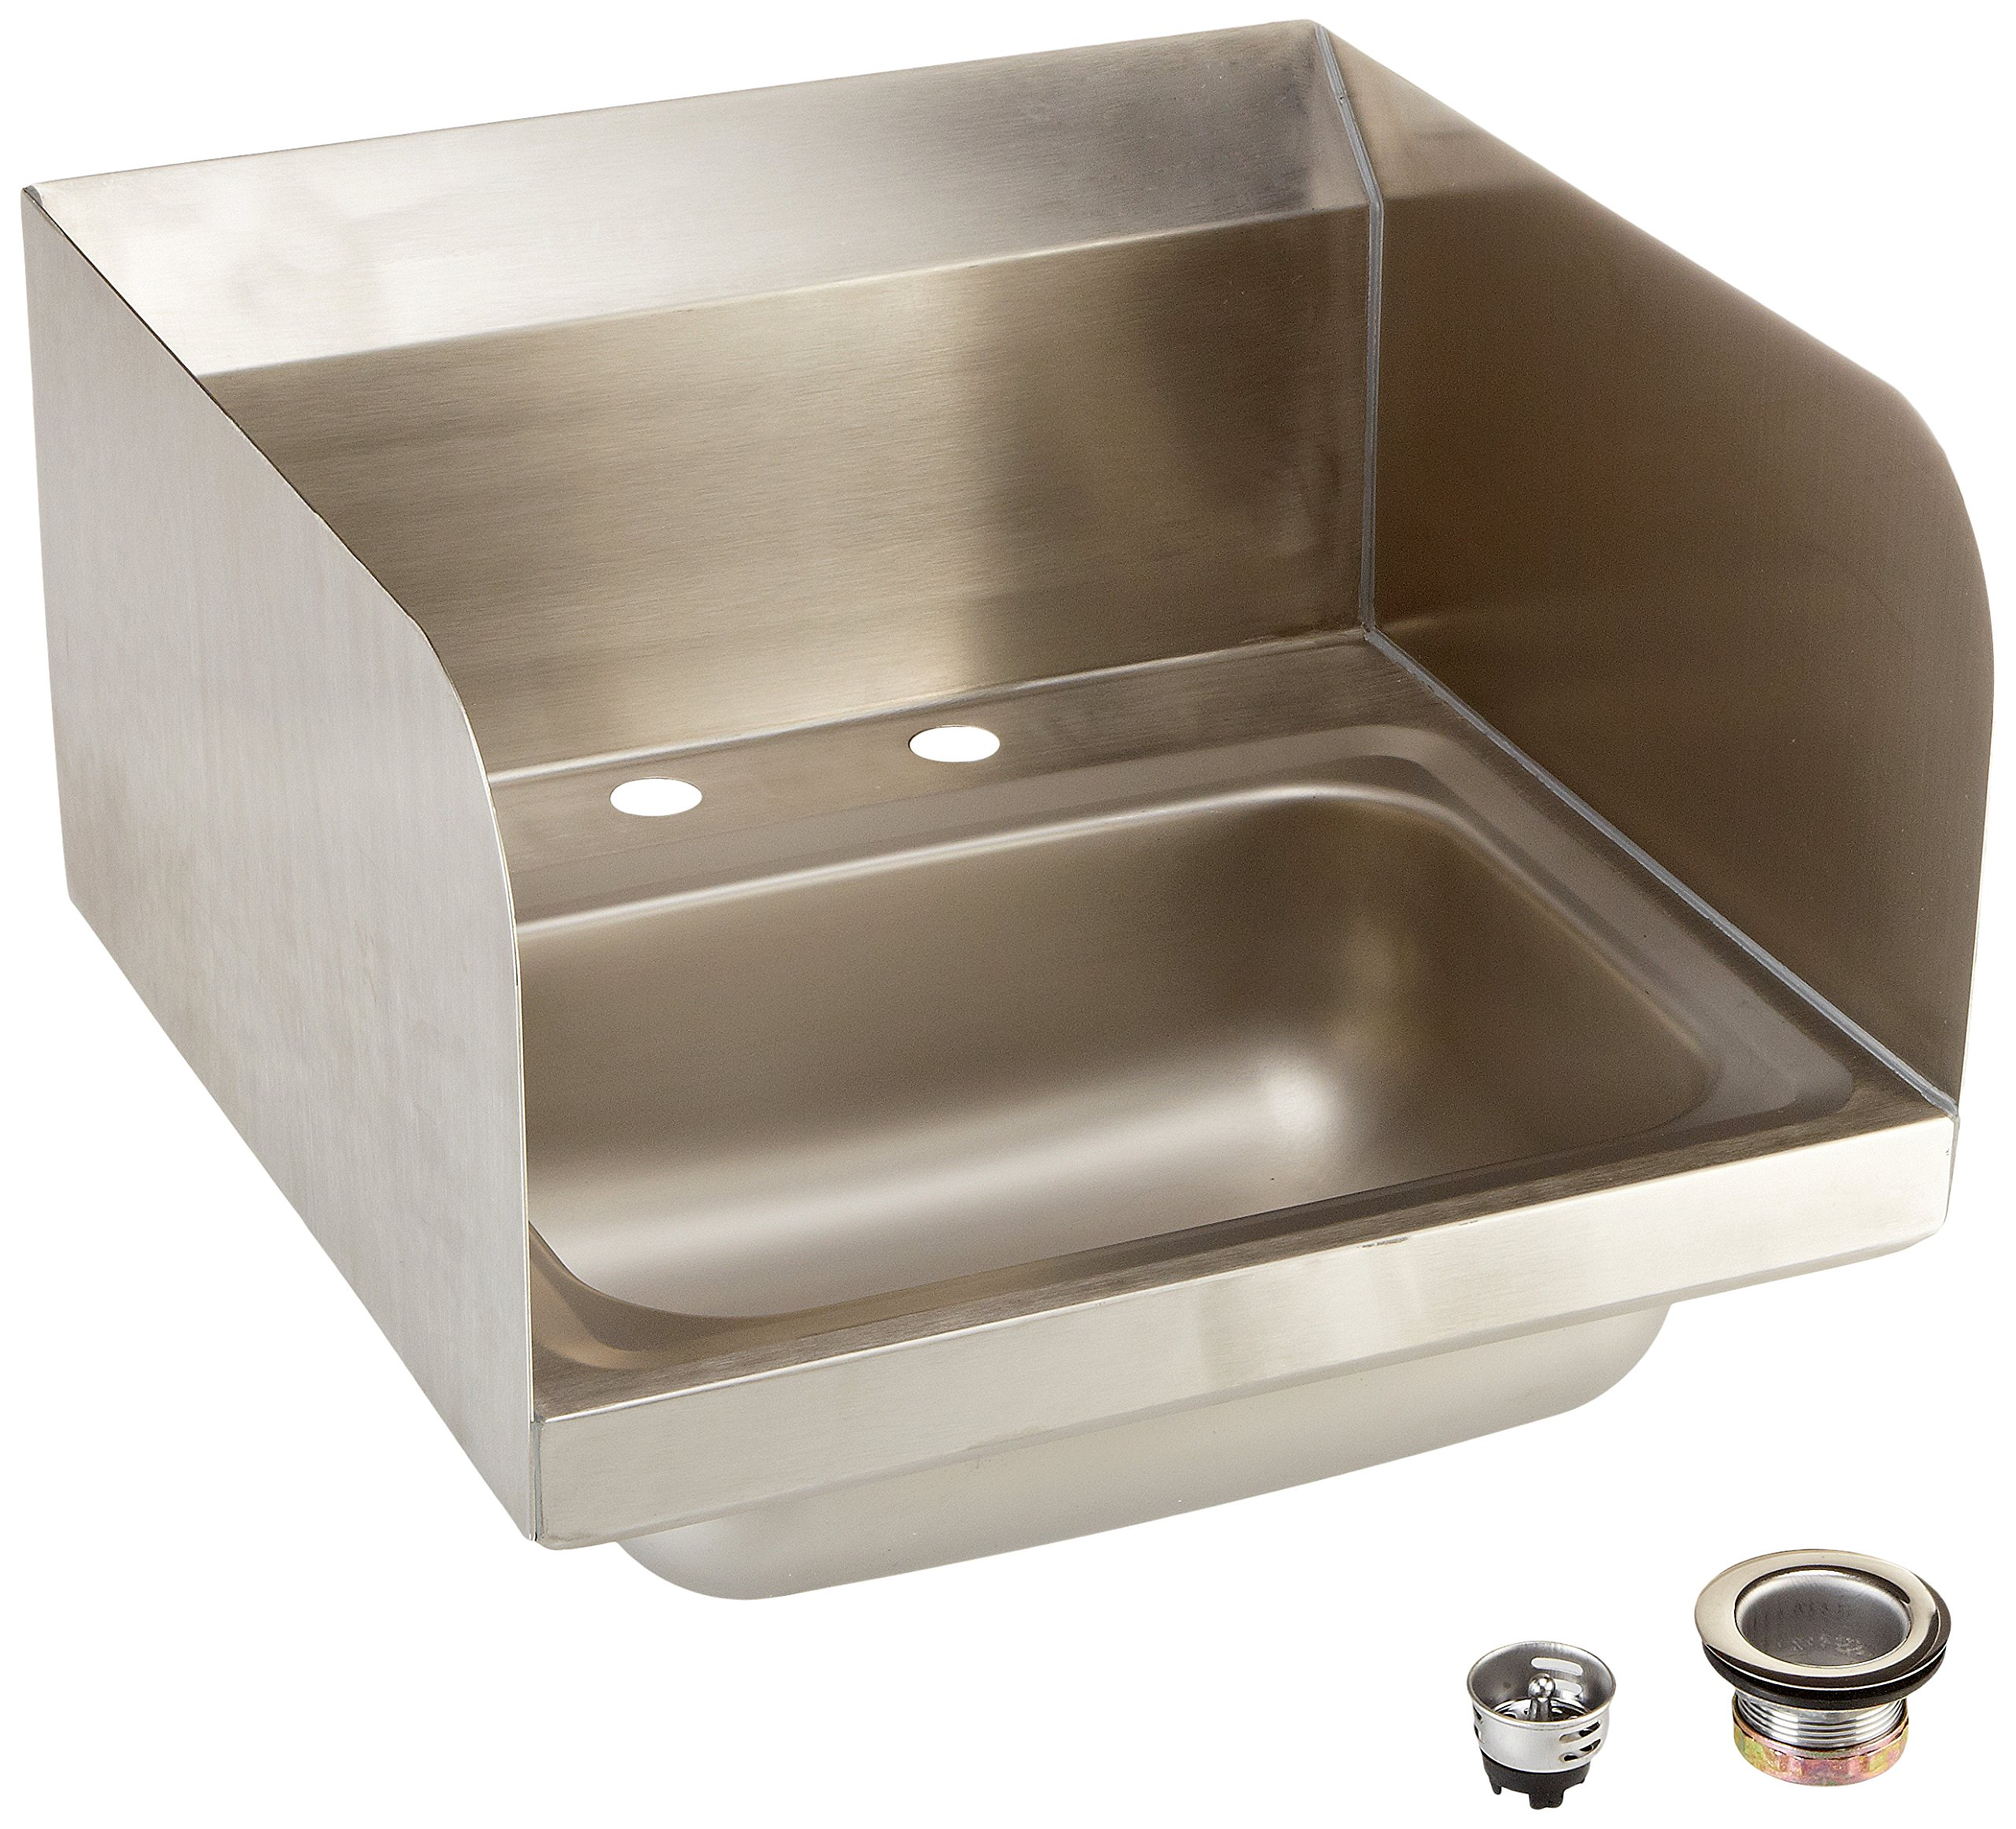 John Boos PBHS-W-1410-2DM-SSLR Stainless Steel 304 Pro-Bowl Hand Sink, 4'' On-Center Deck Mount Faucet Location, Left Hand and Right Hand Side Splash, Sink Size: 14'' Length x 10'' Width x 5'' Depth